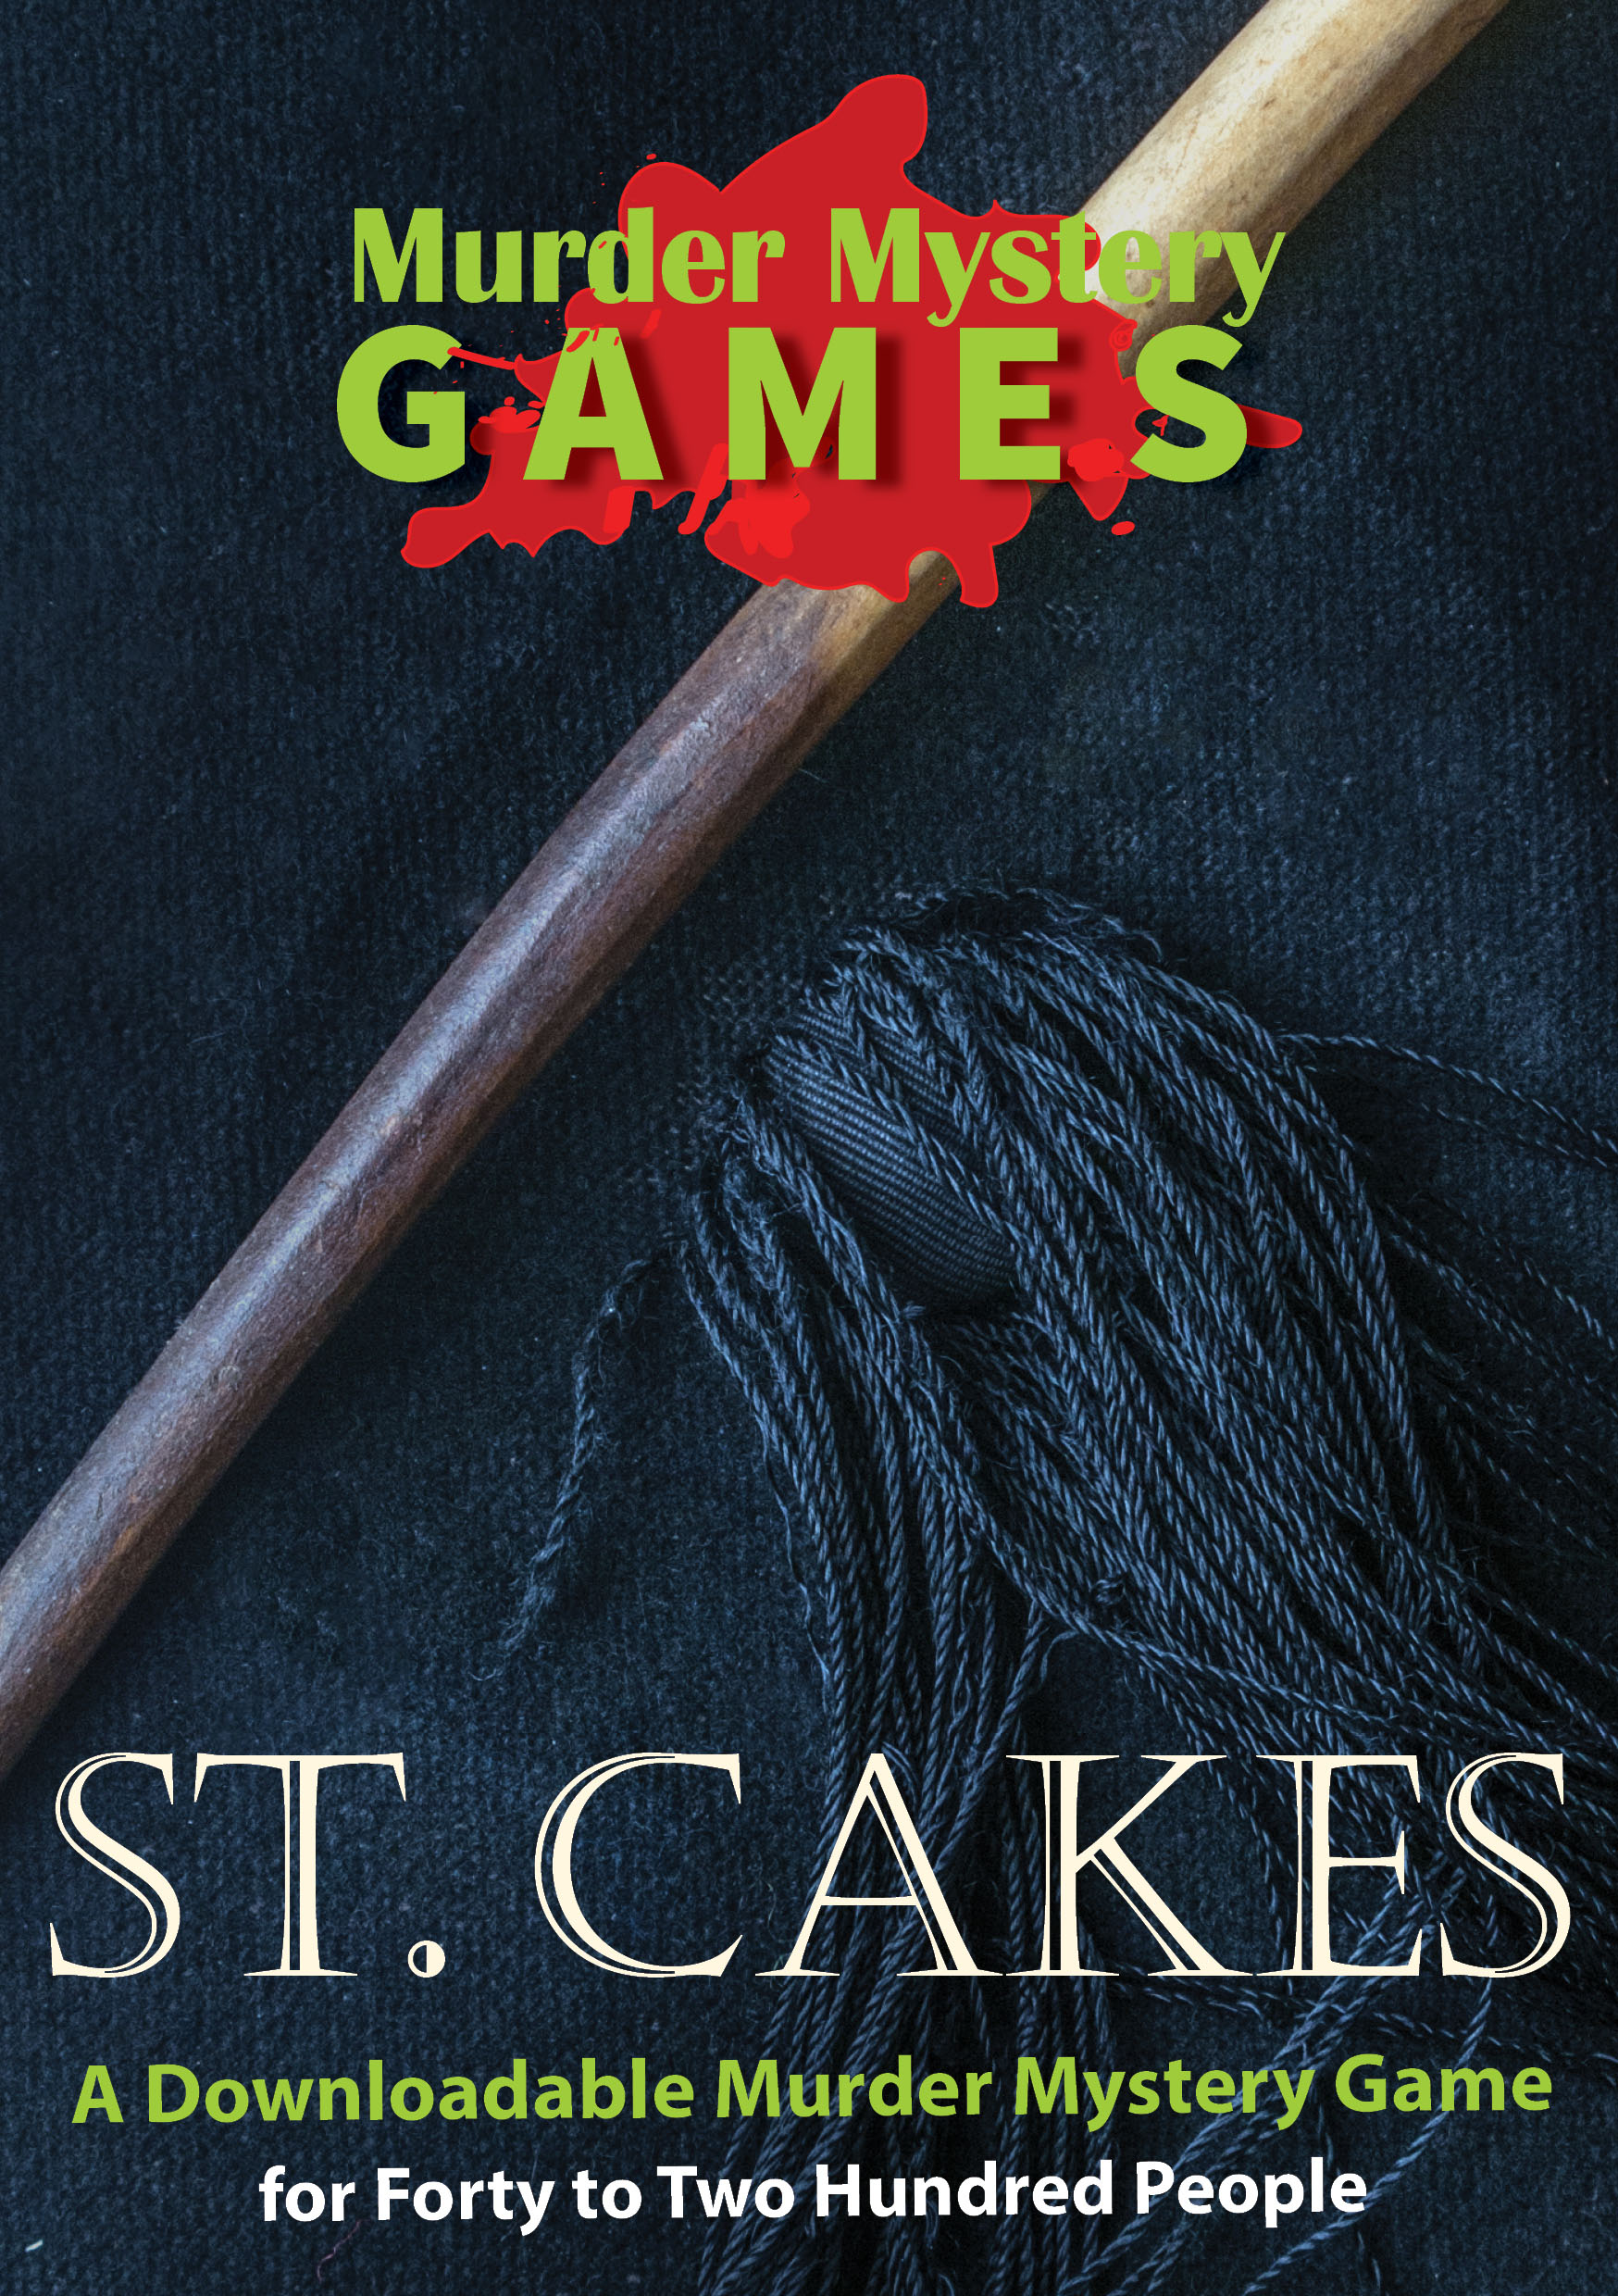 St. Cakes - A Downloadable Murder Mystery Game set in a school